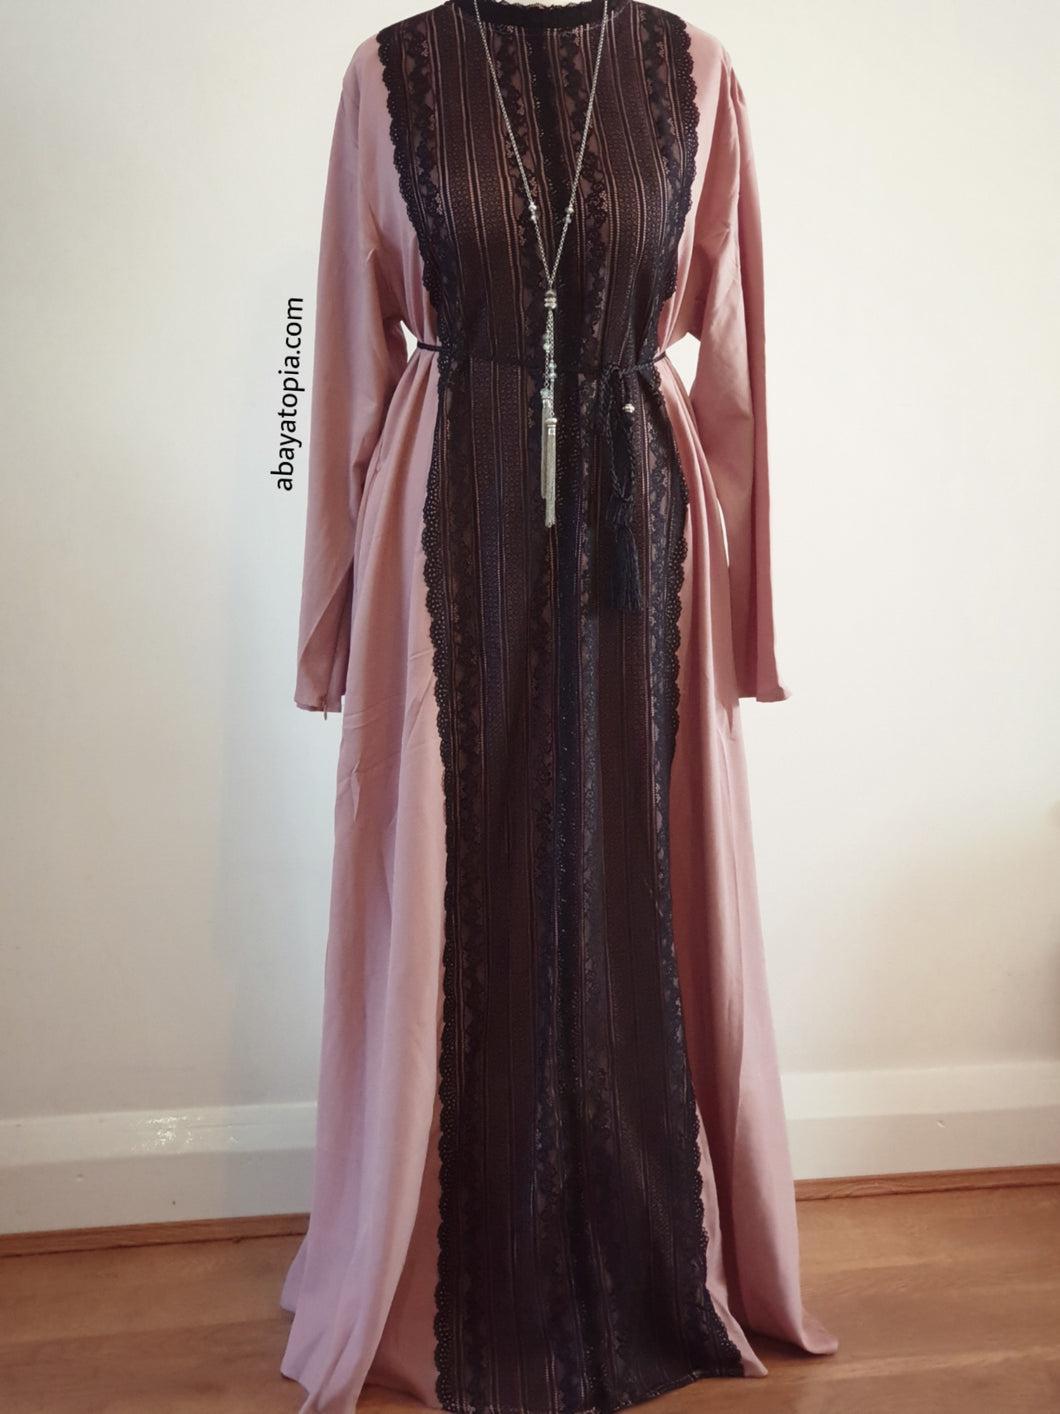 Dusky Mauve Closed Abaya Dress with Black Lace